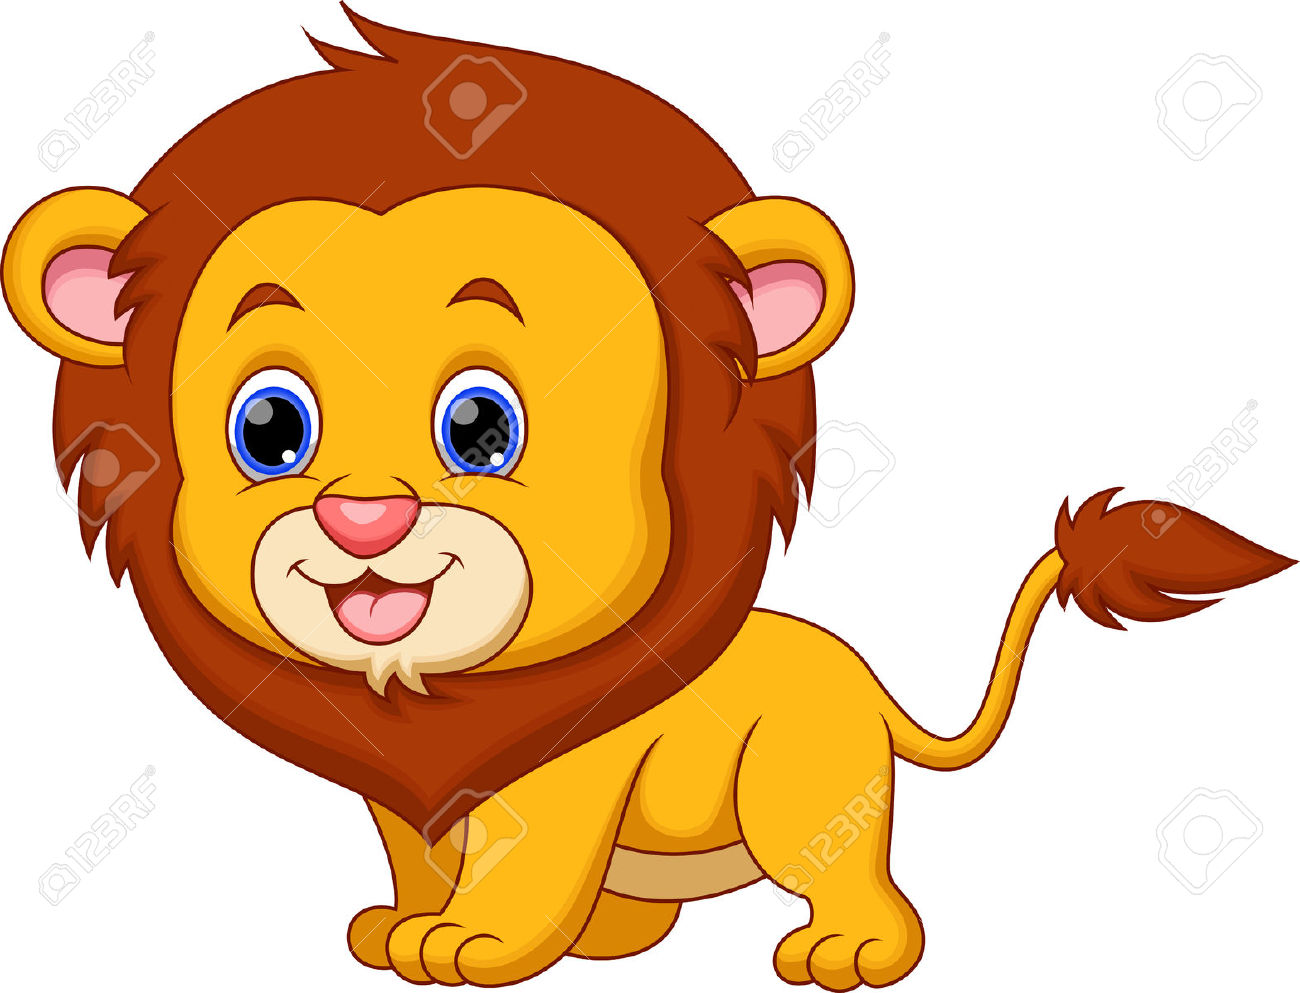 Cute Baby Lion Cartoon Royalty Free Cliparts, Vectors, And Stock.